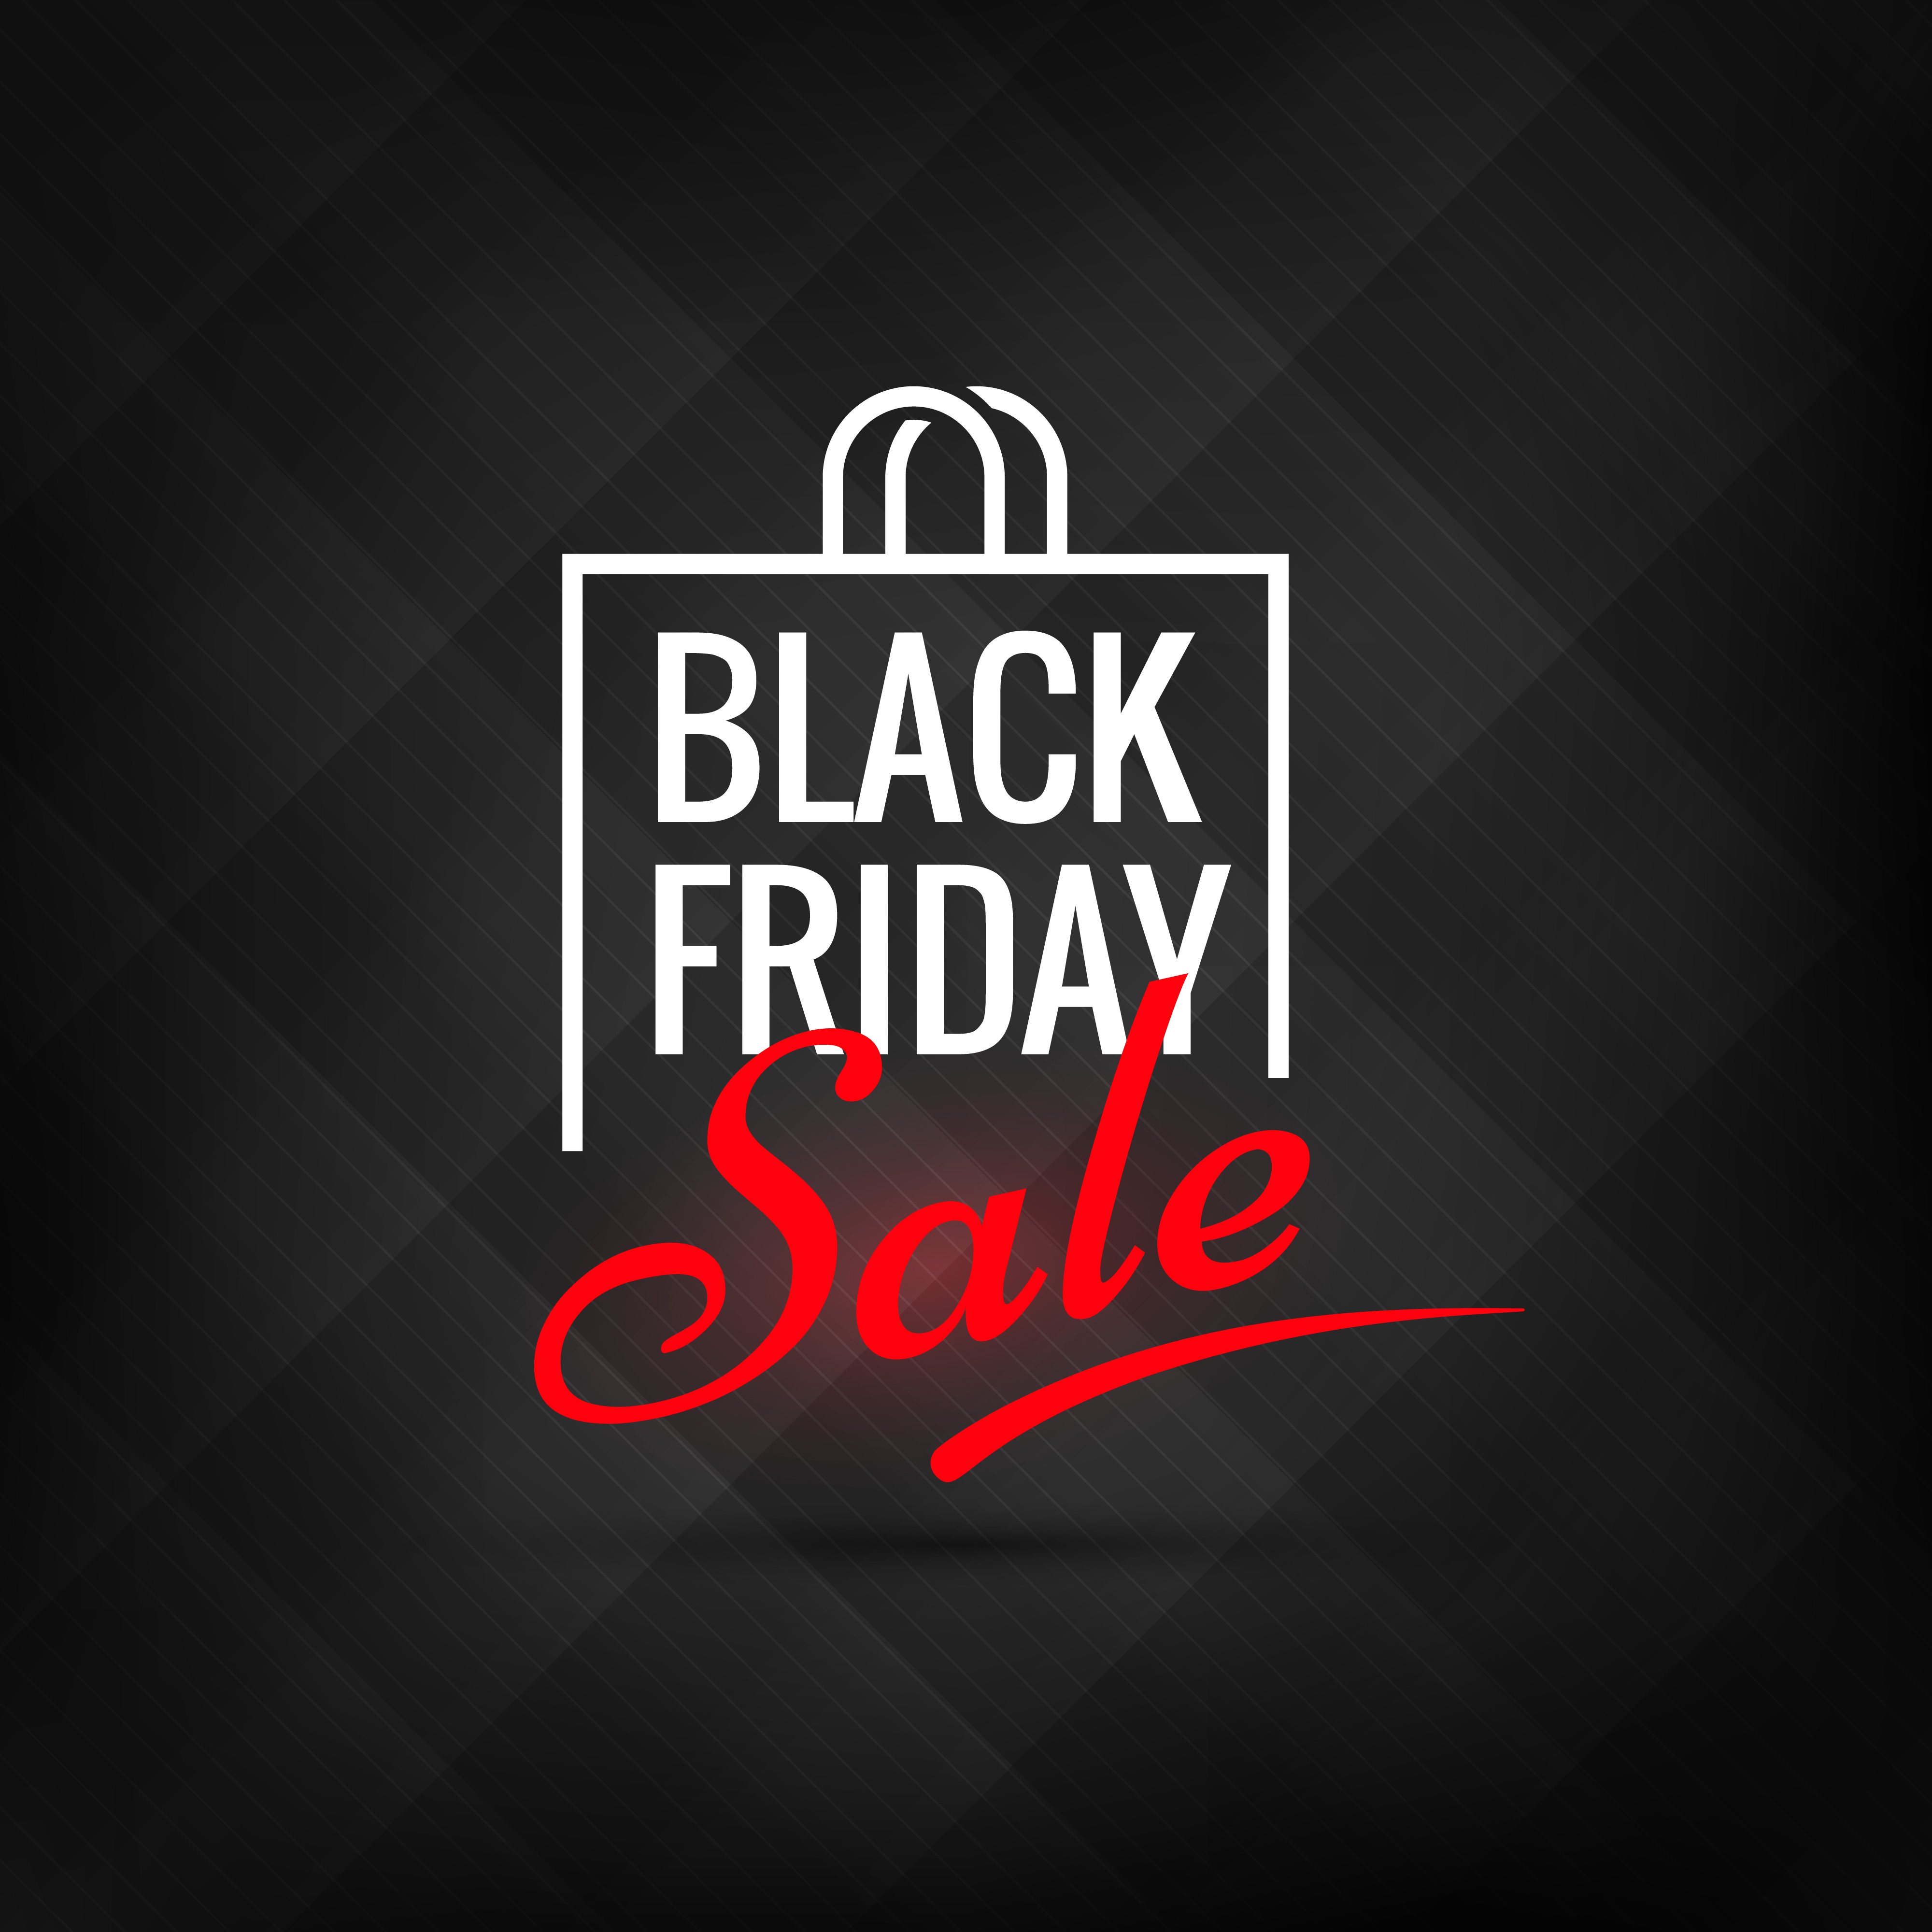 Friday Sale Creative Black Friday Sale Poster Download Free Vector